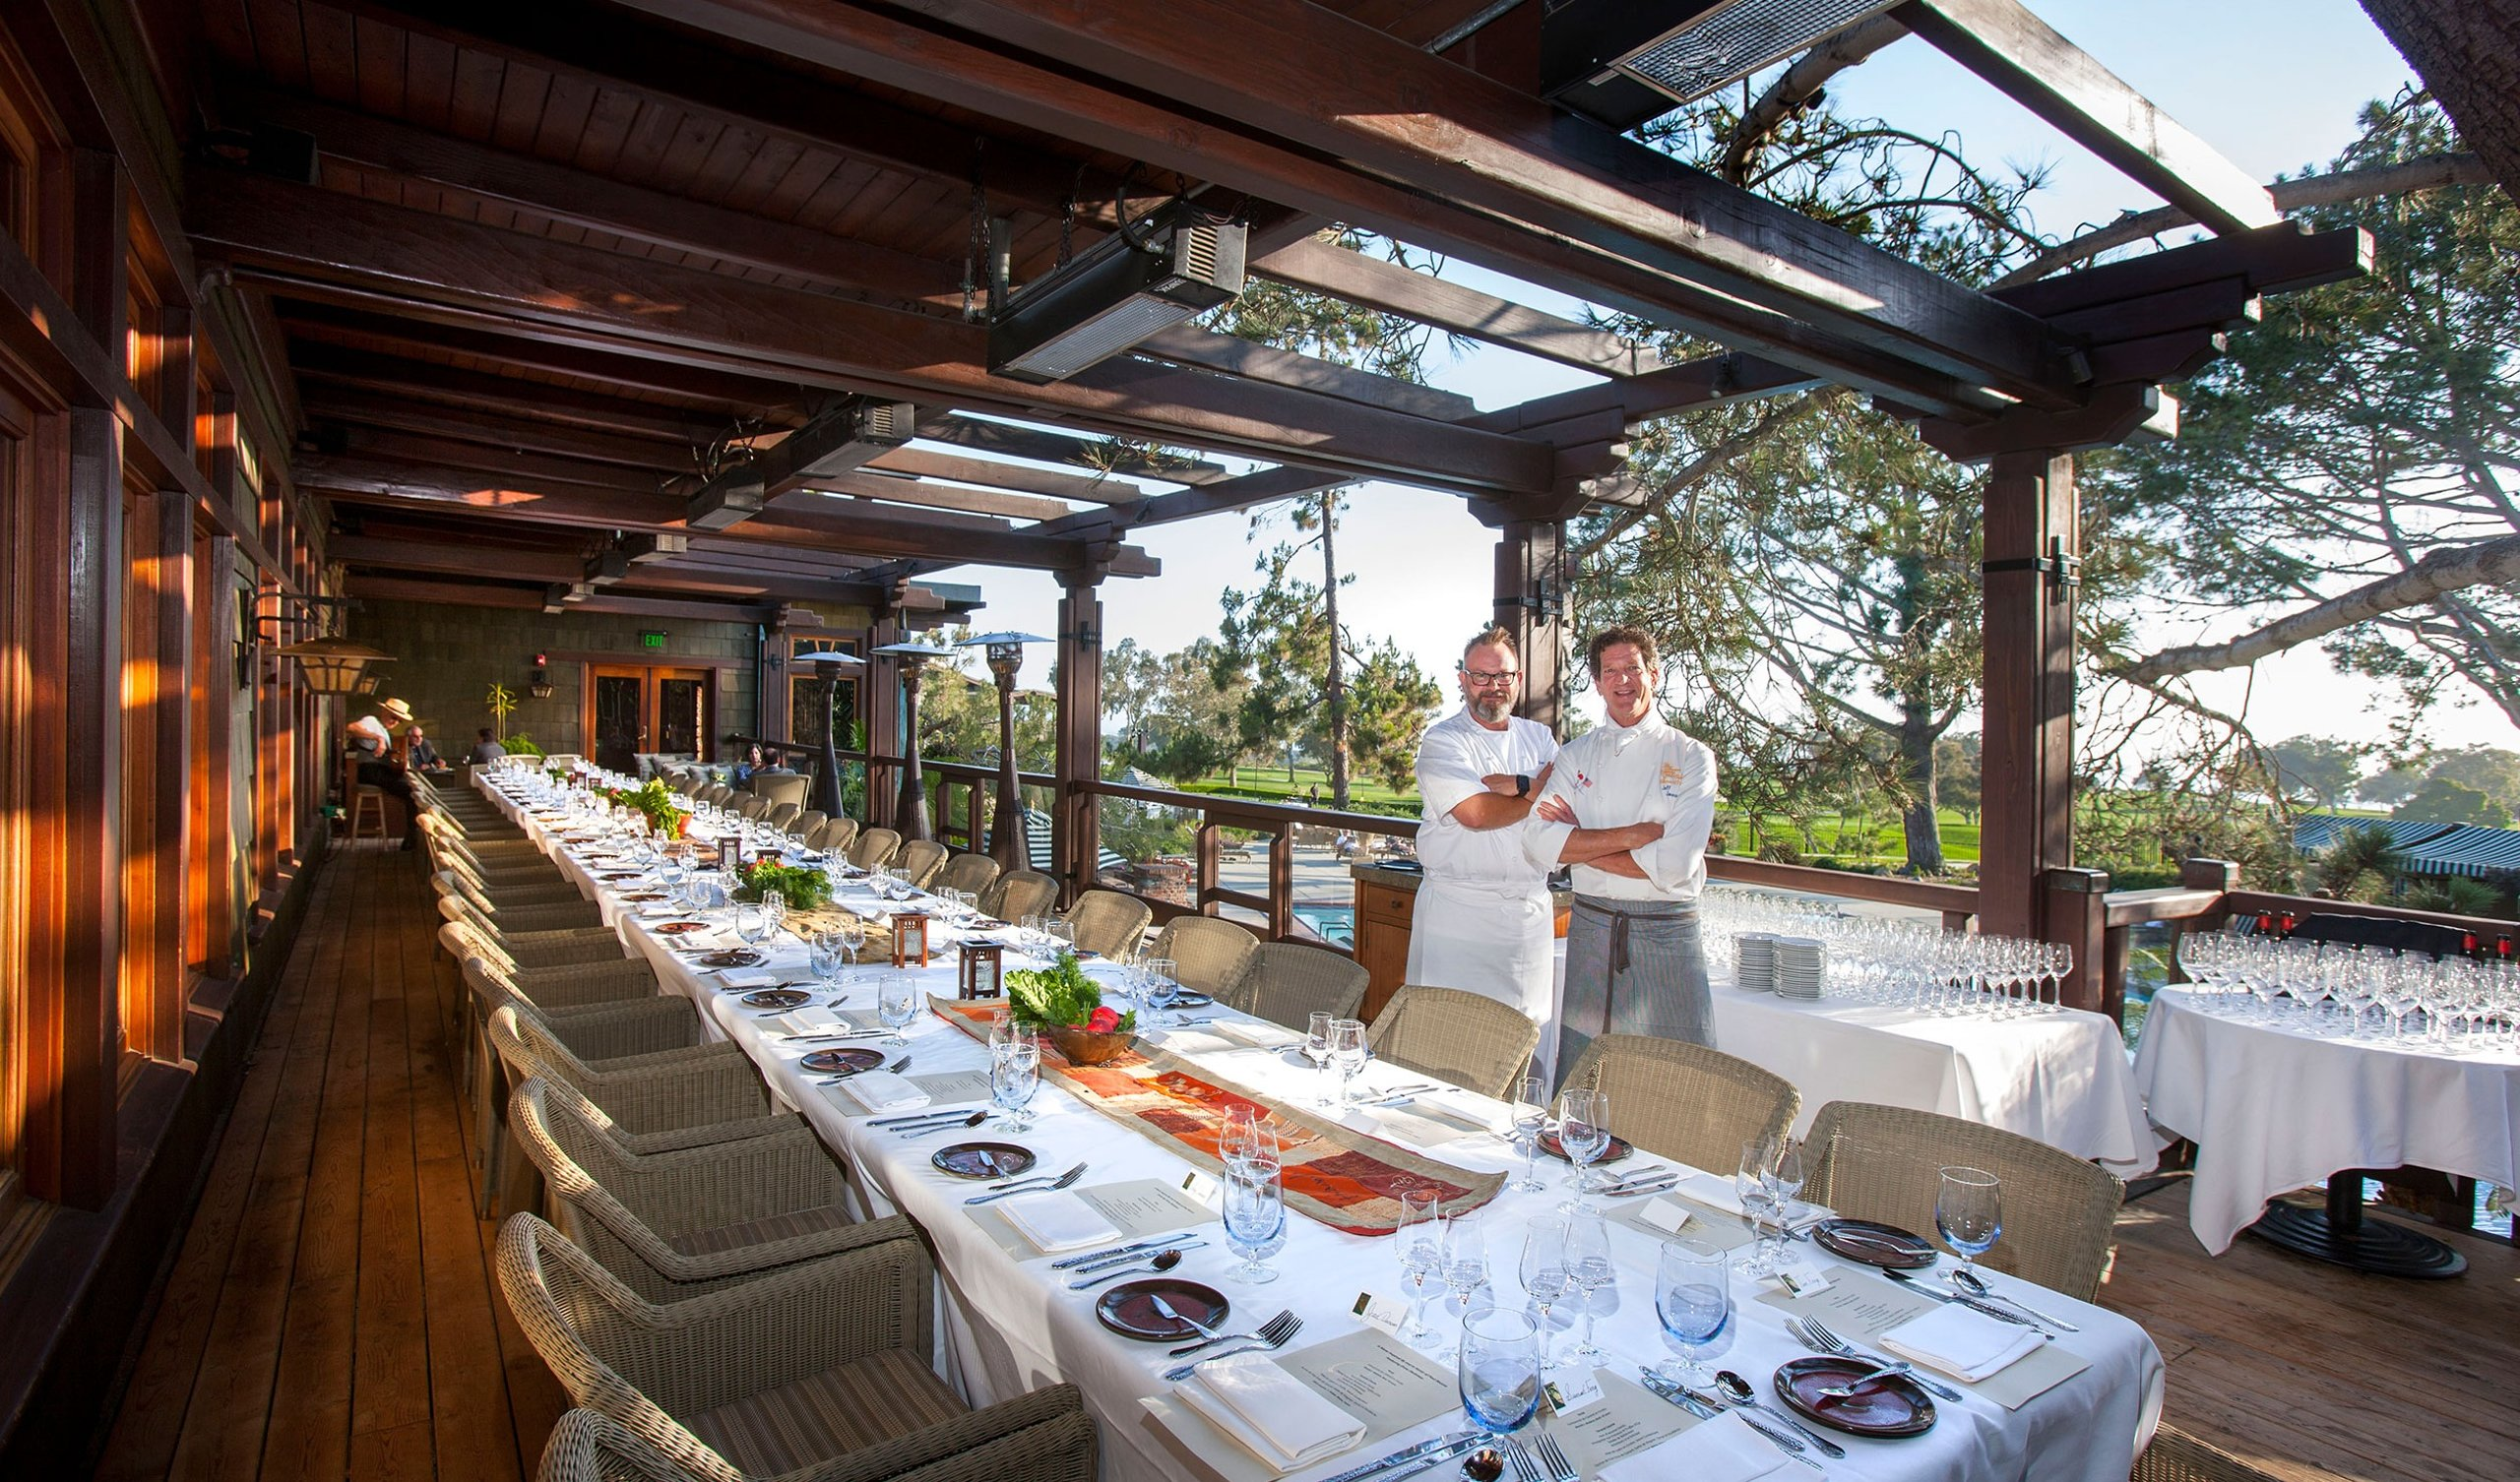 The 10 Best Restaurants For Special Occasions In San Diego